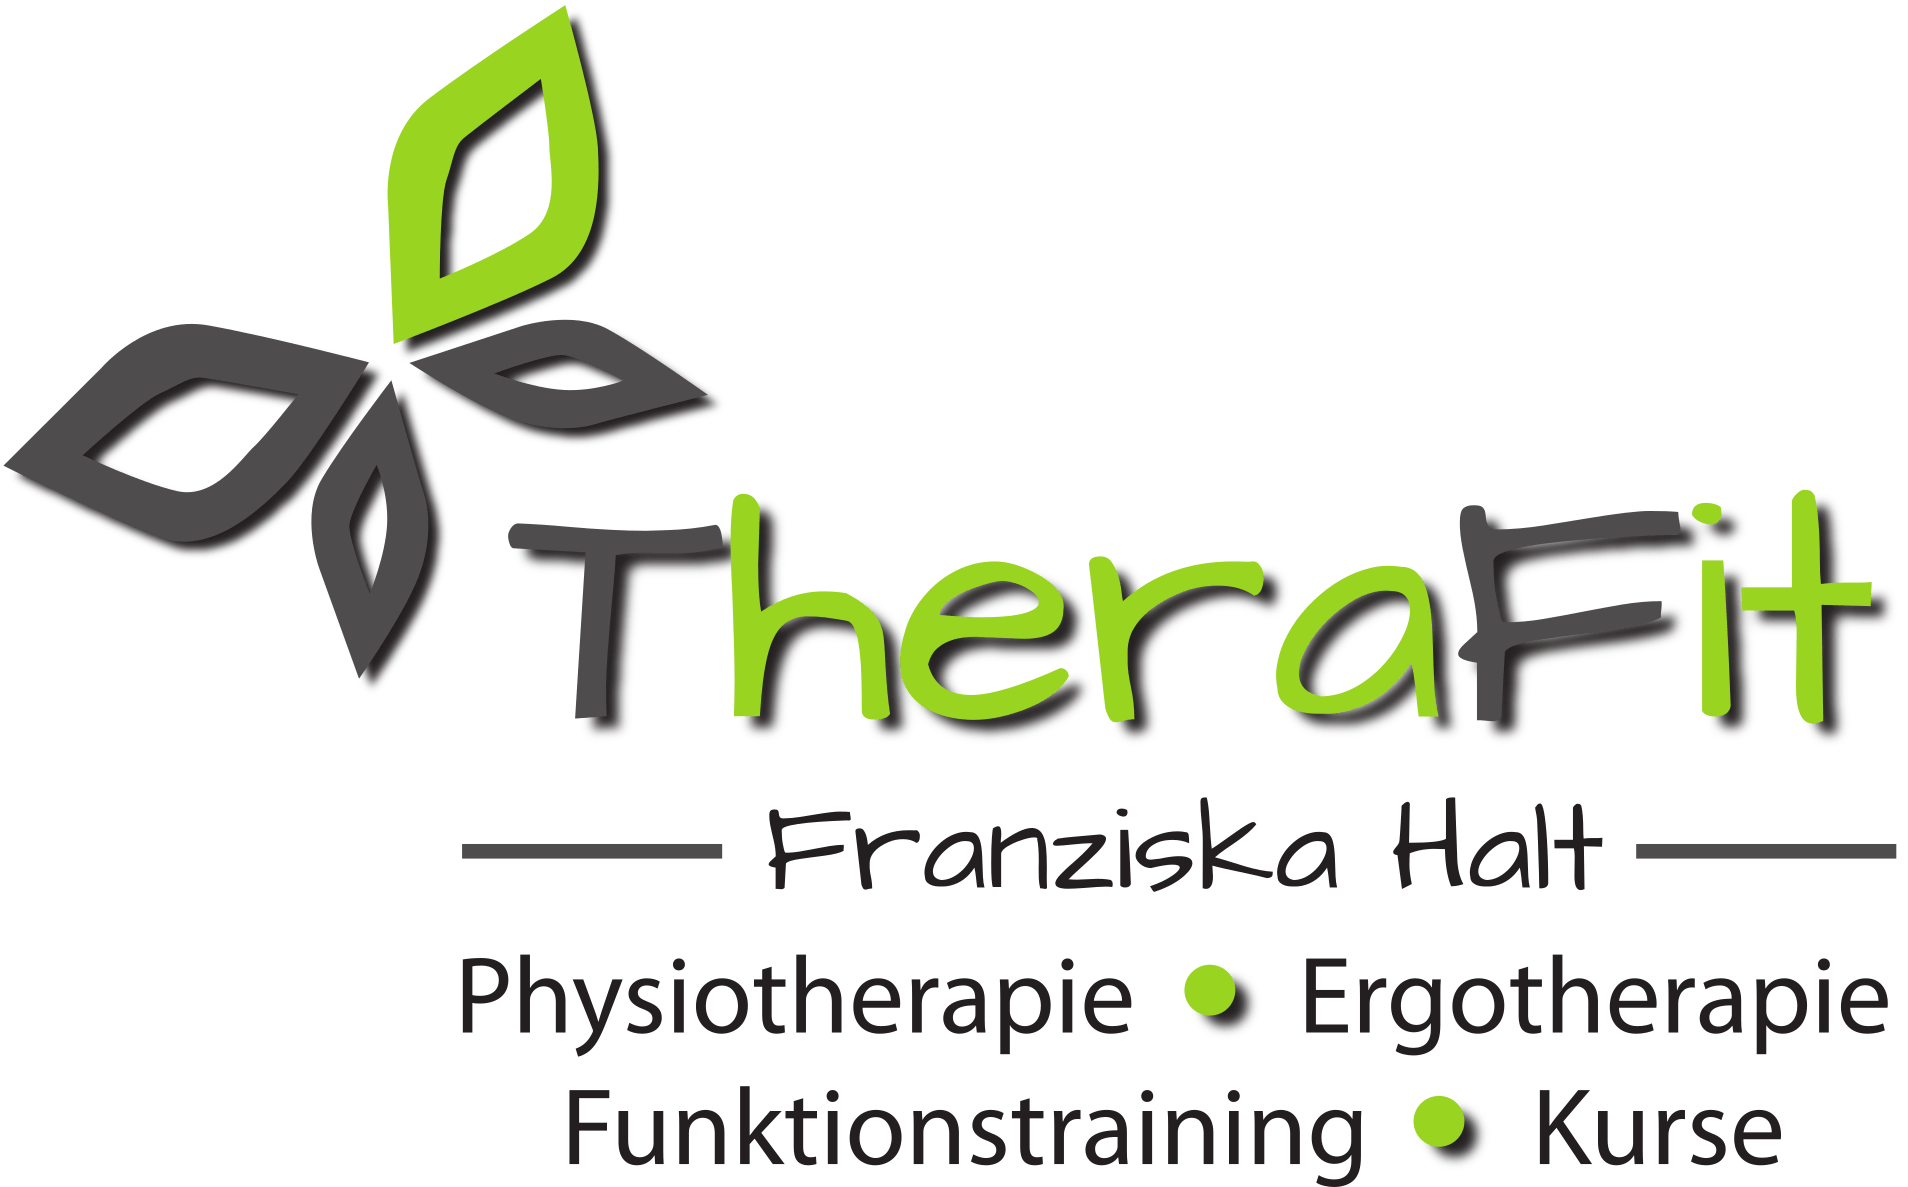 Thera Fit